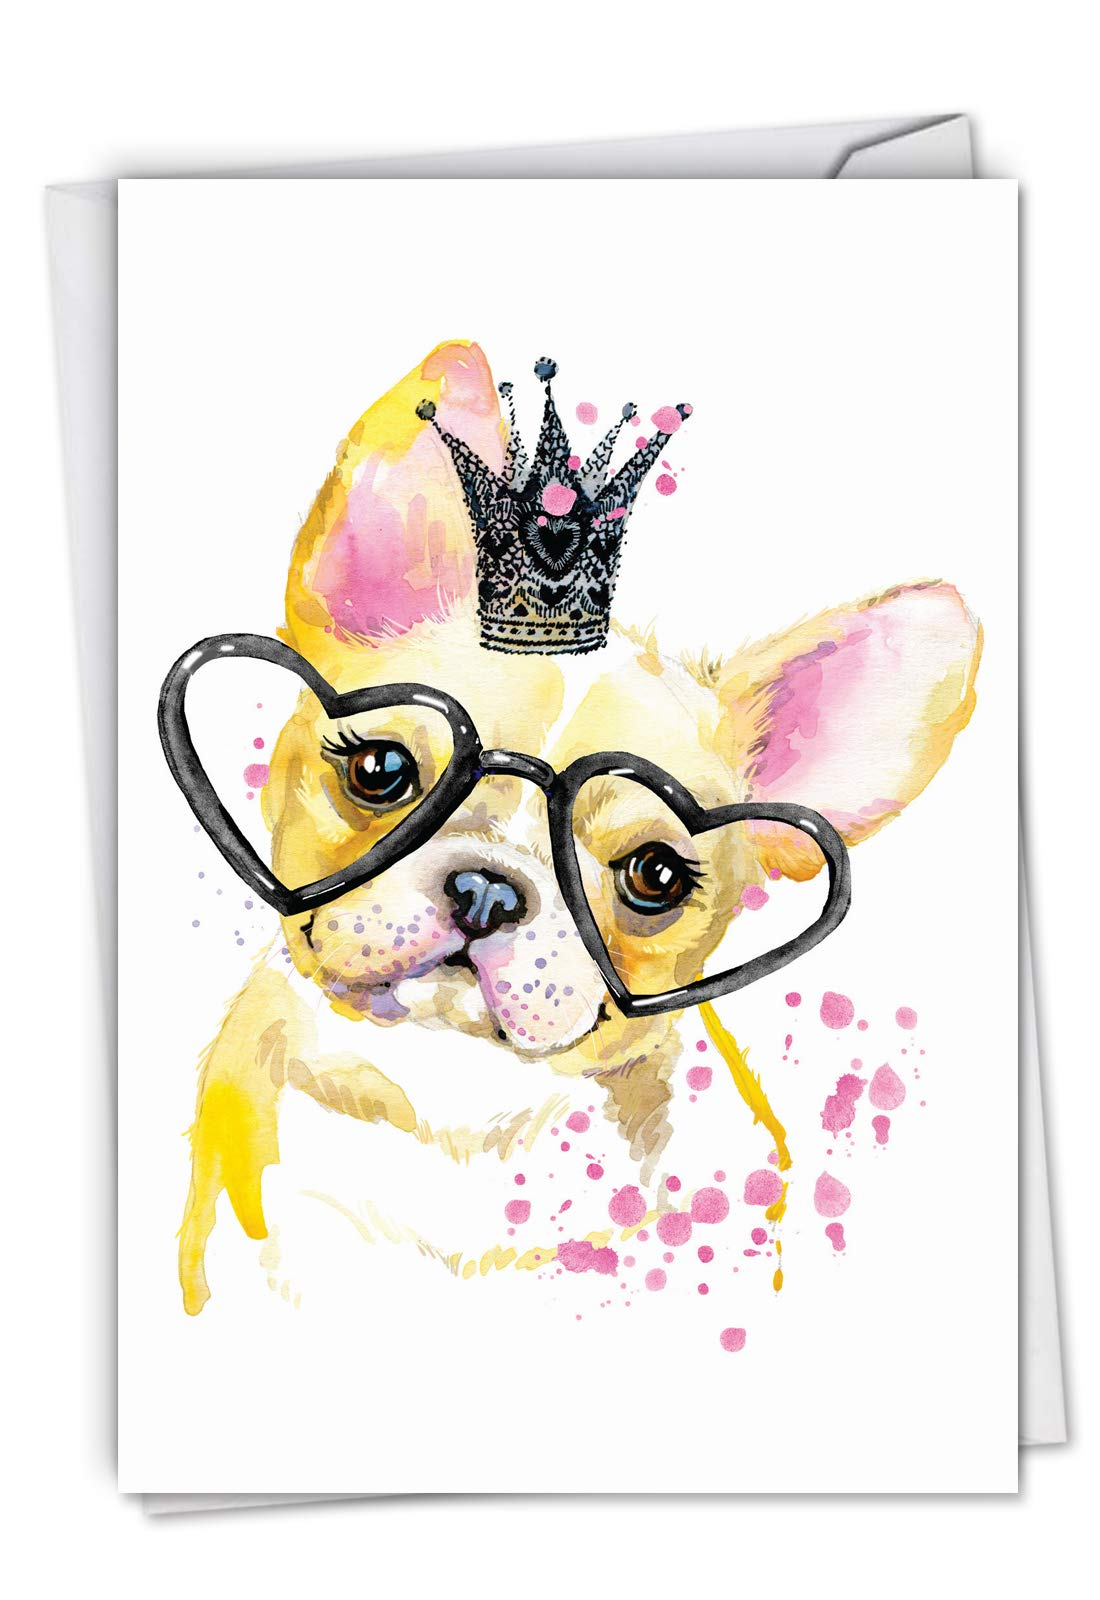 Funky Colorful Creatures Dog - Watercolor Painted Happy Birthday Note Card with Envelope (4.63 x 6.75 Inch) - Cute Pug Puppy in Crown, Animal Greeting Card - Stationery Bday Card for Kids C6749ABDG